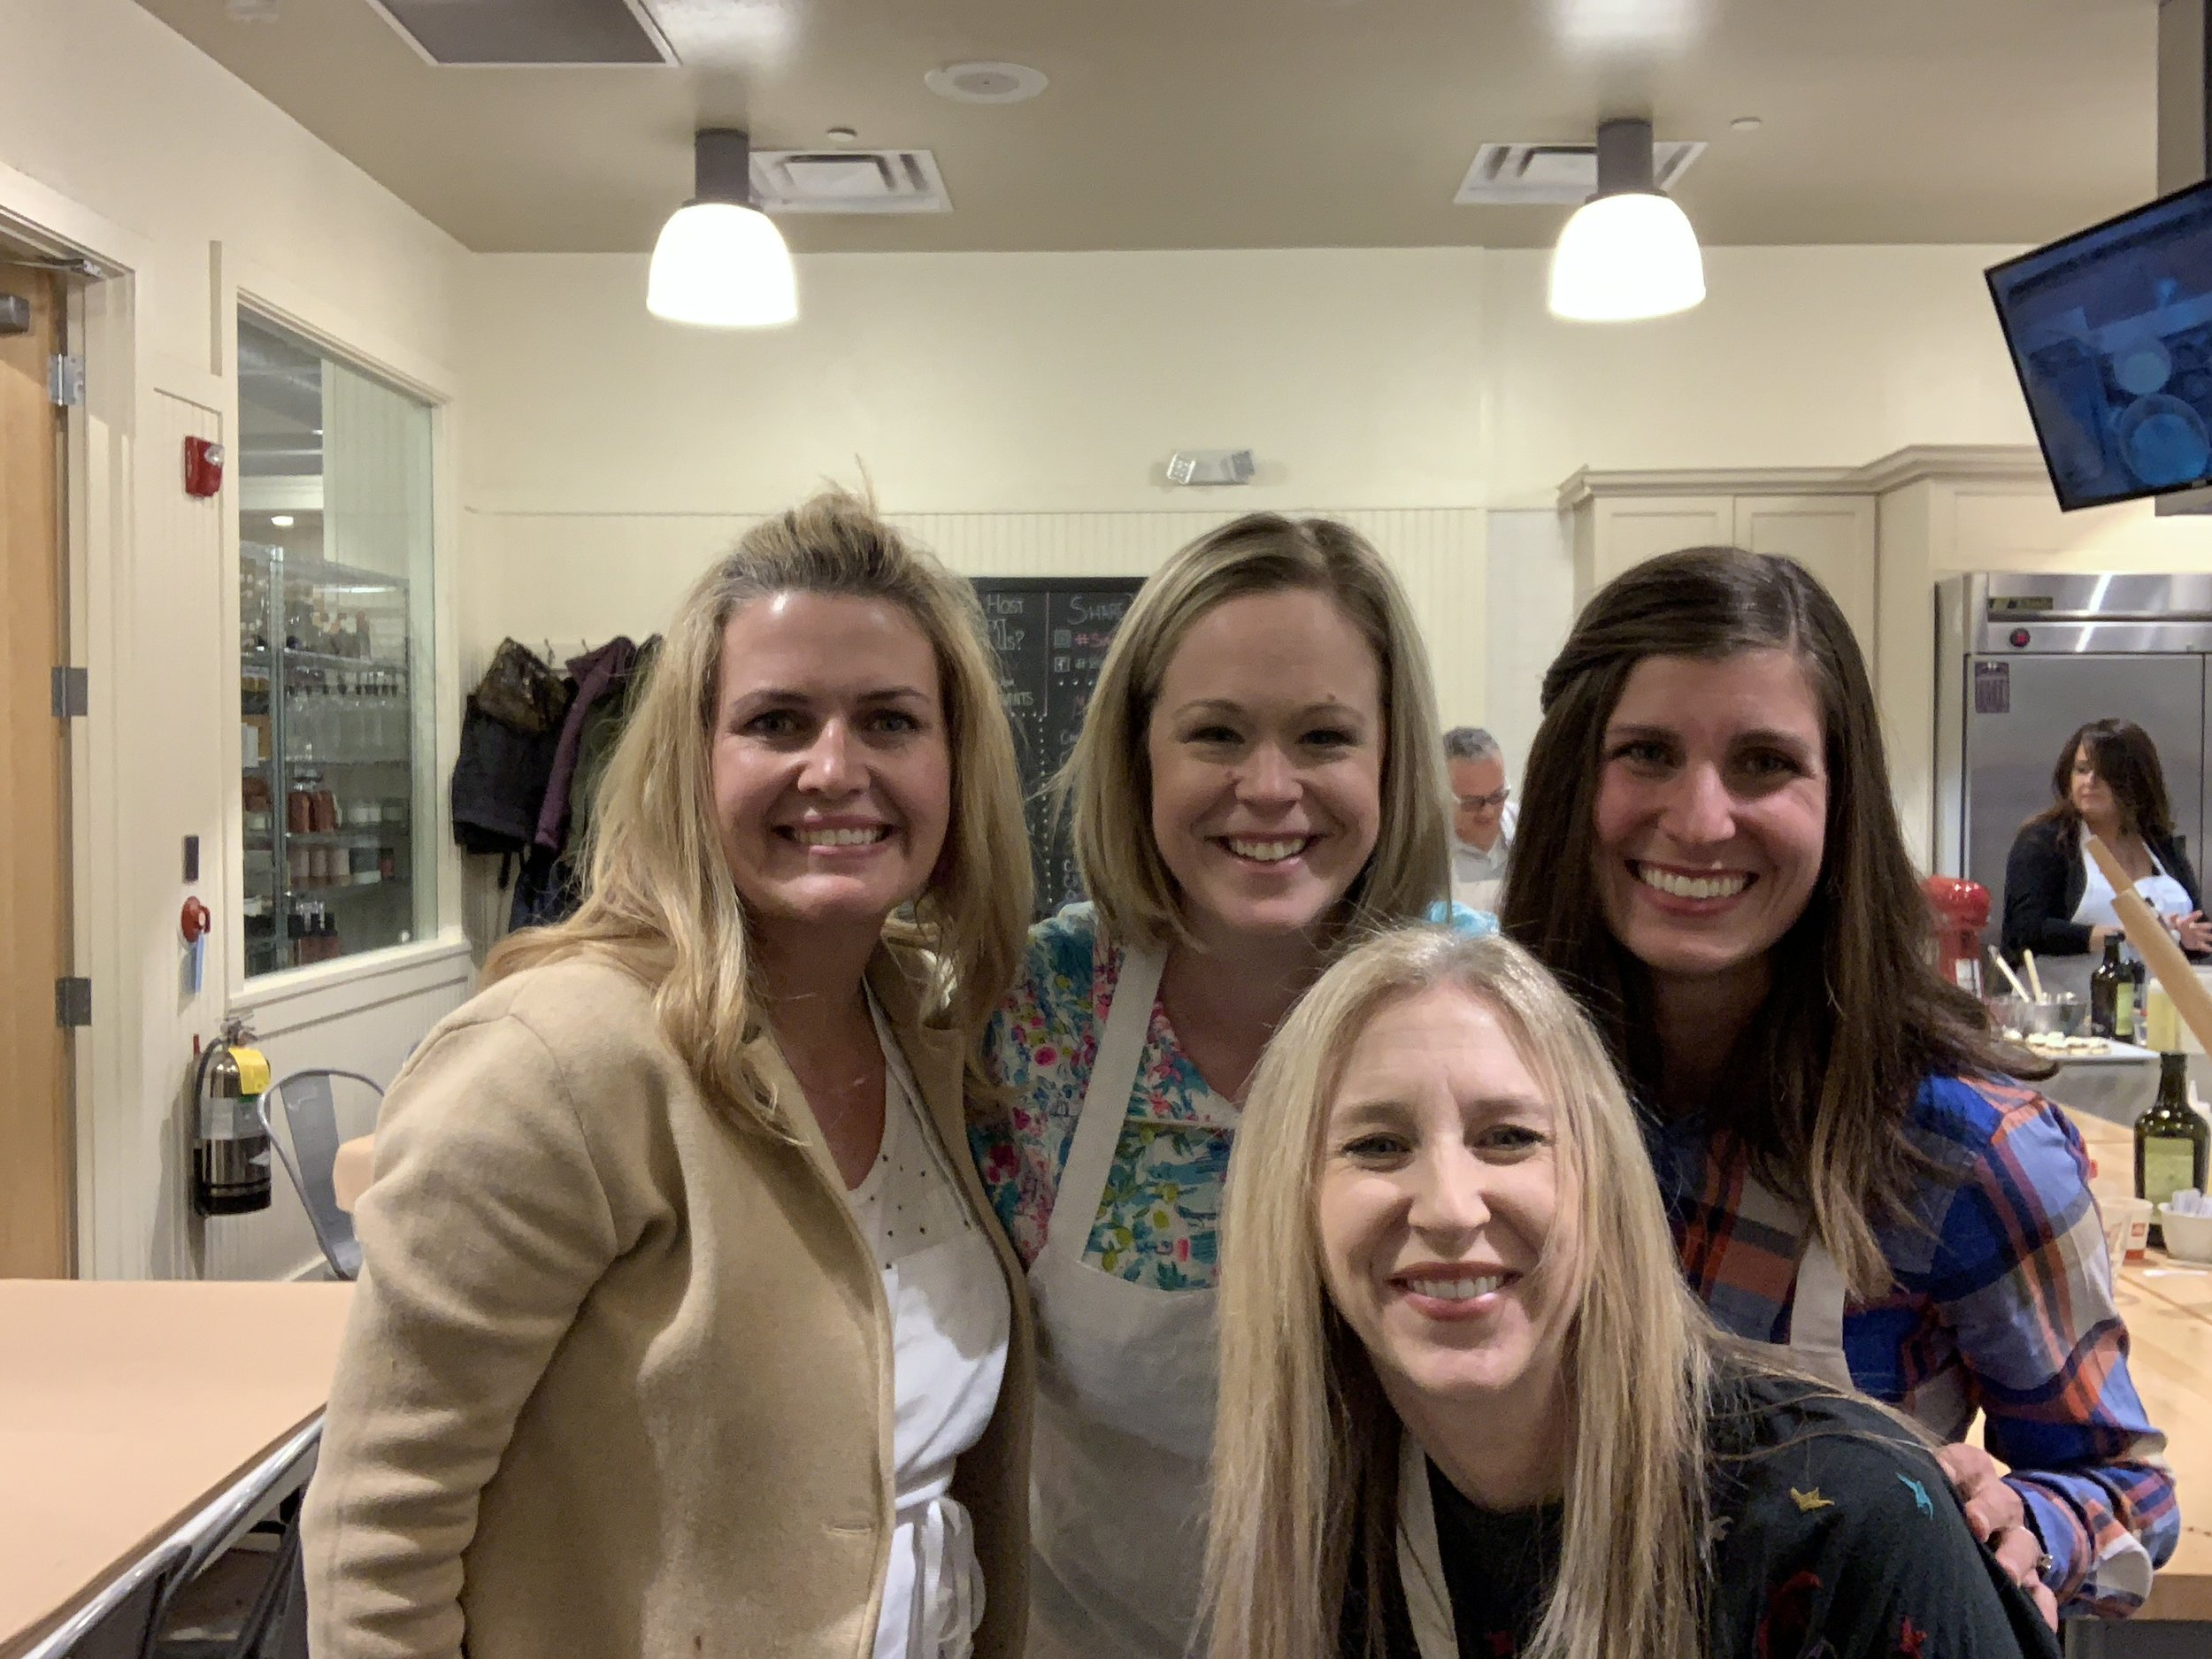 Nicole, Allie, Ginny, and me. We realized tonight that this was our SIXTH year together celebrating our favorite things and our favorite people!